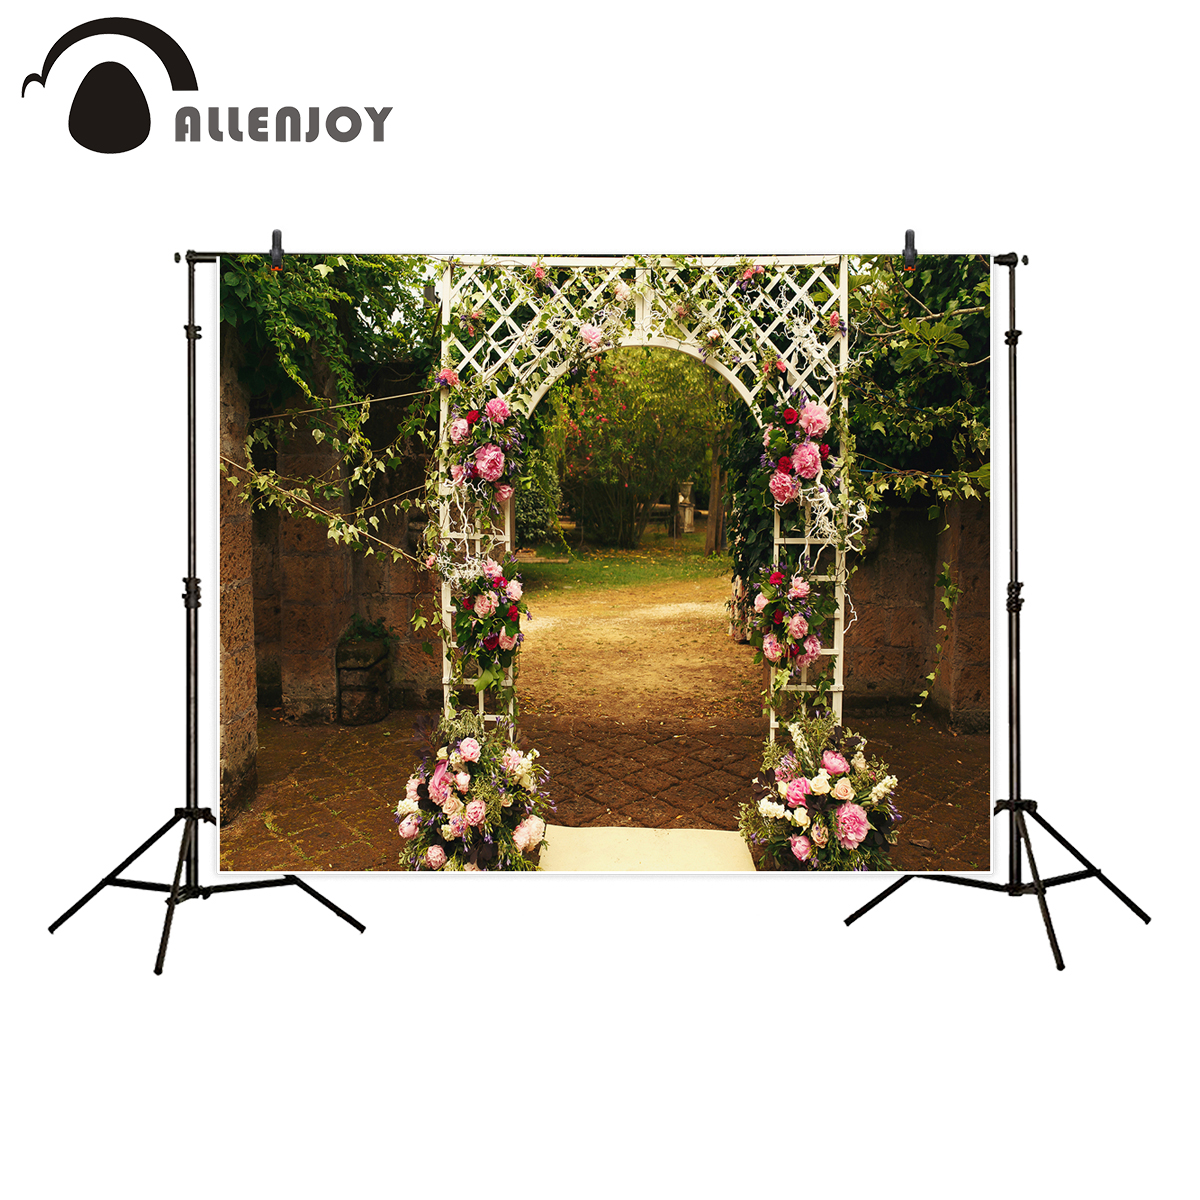 Allenjoy photography backdrop for photo studio wedding flower door garden retro tree background props printed photobooth allenjoy background for photo studio full moon spider black cat pumpkin halloween backdrop newborn original design fantasy props